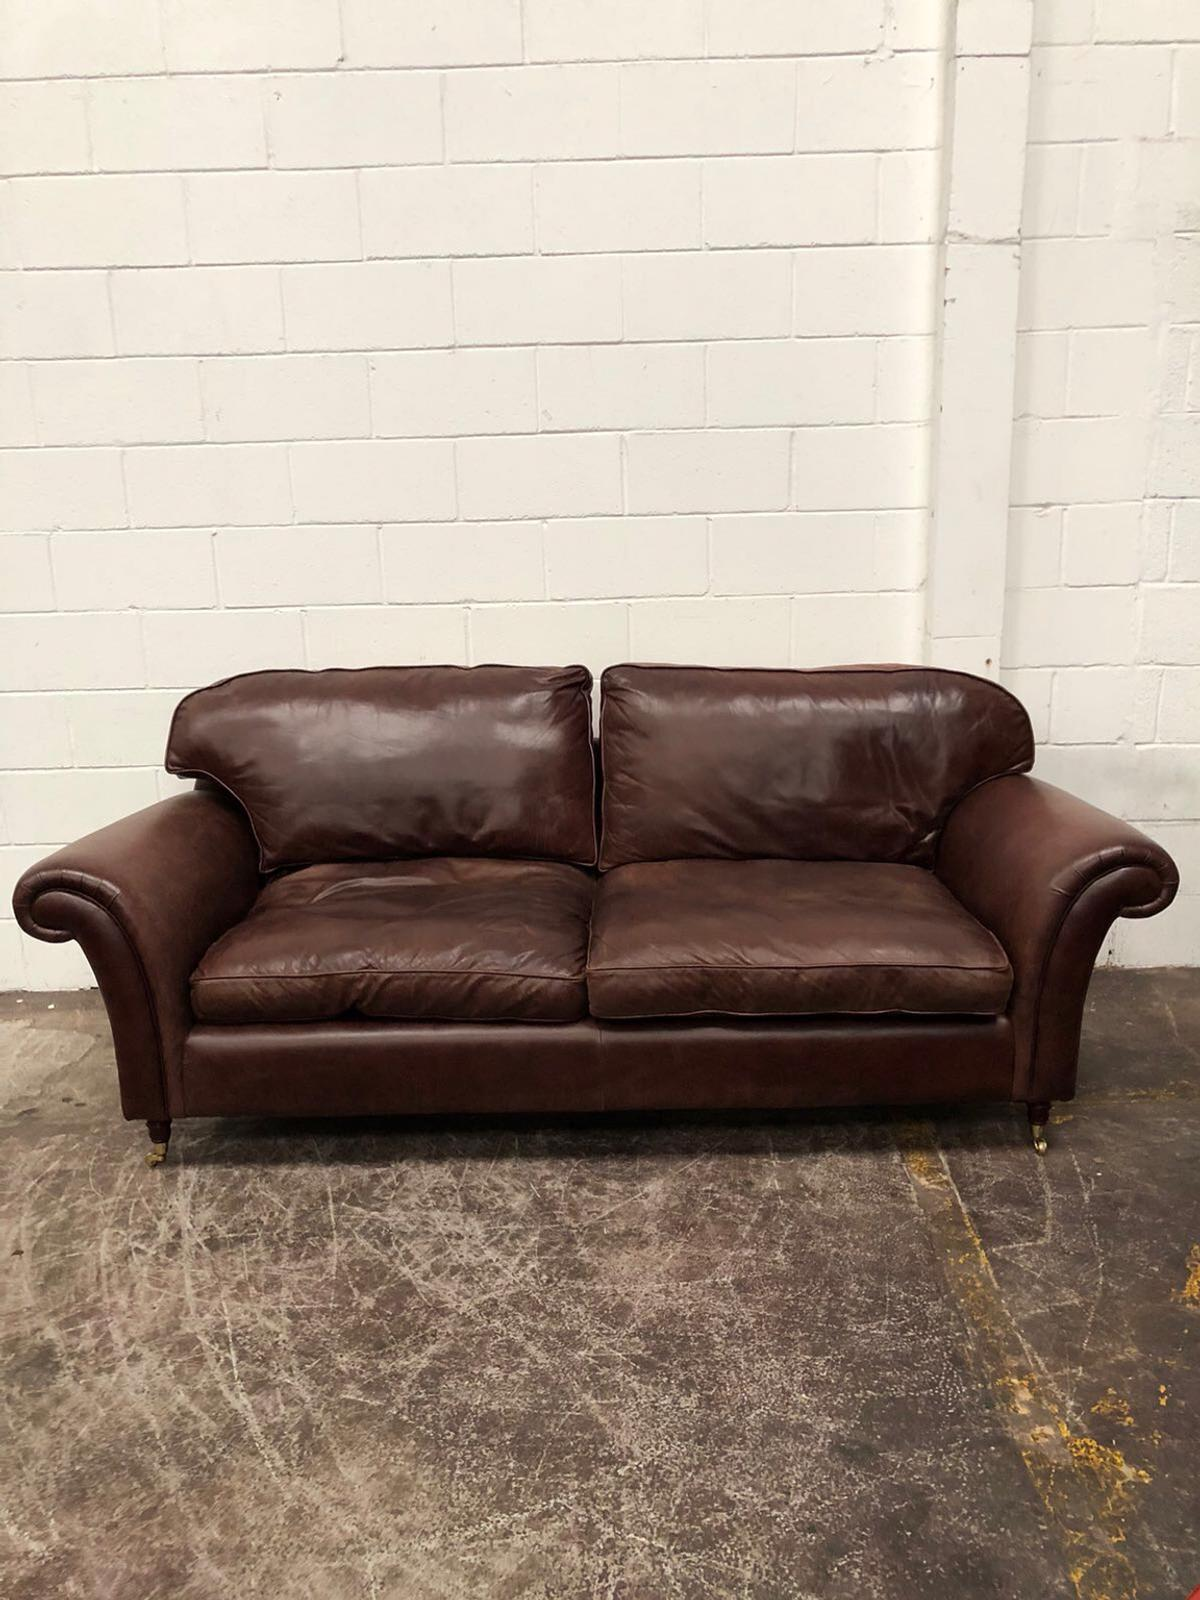 Laura Ashley 3 seater leather sofa in EX15 cullompton for £450.00 ...